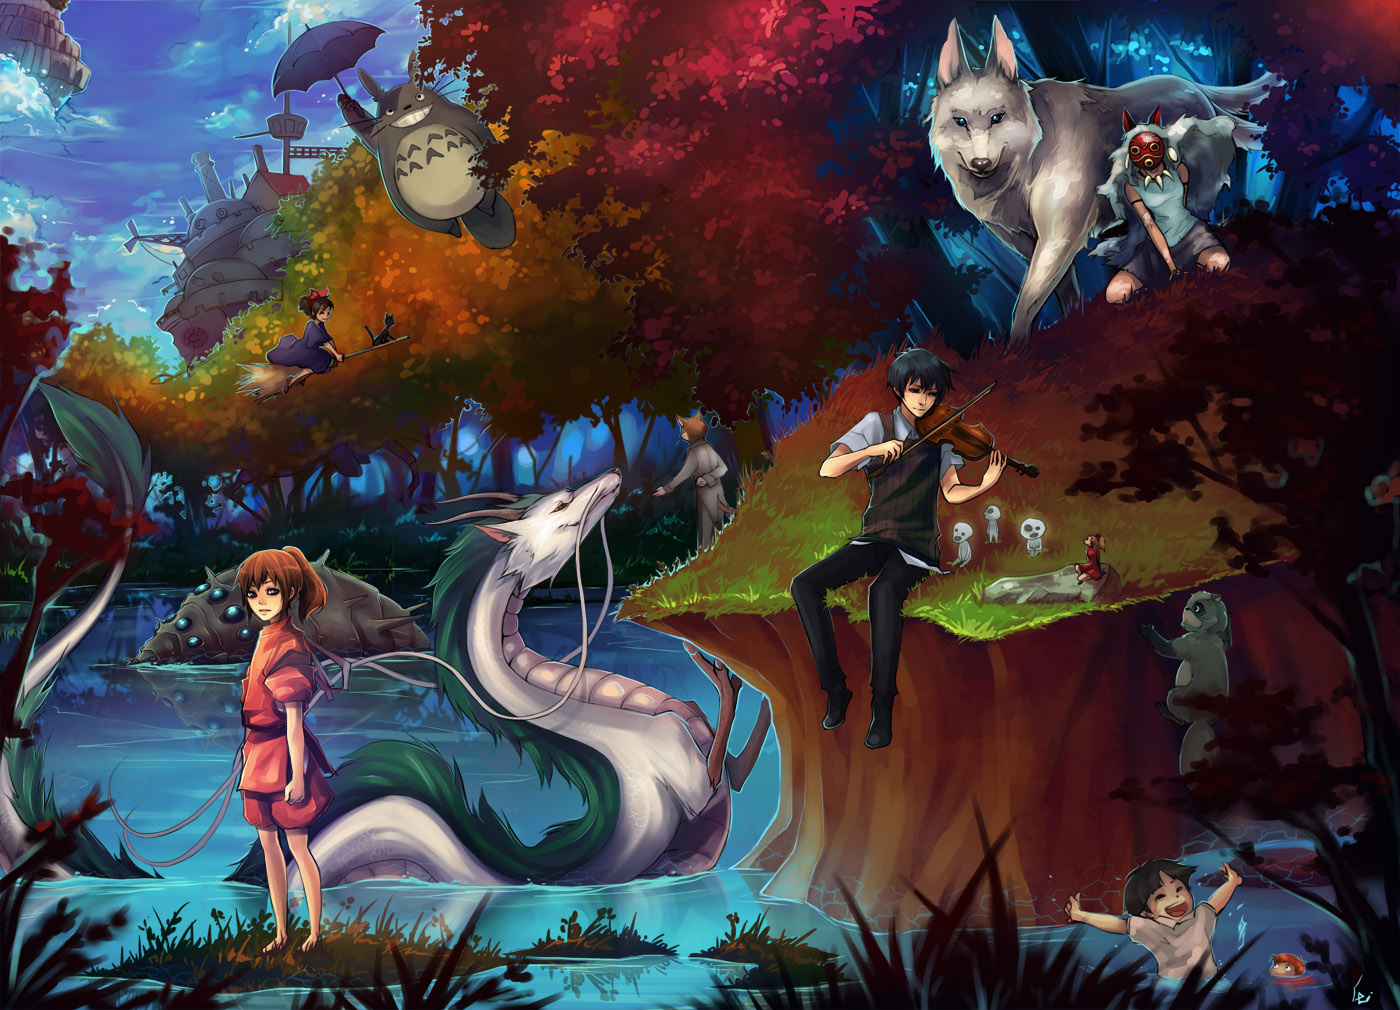 Studio Ghibli Wallpaper Studio Ghibli 432989 Hd Wallpaper